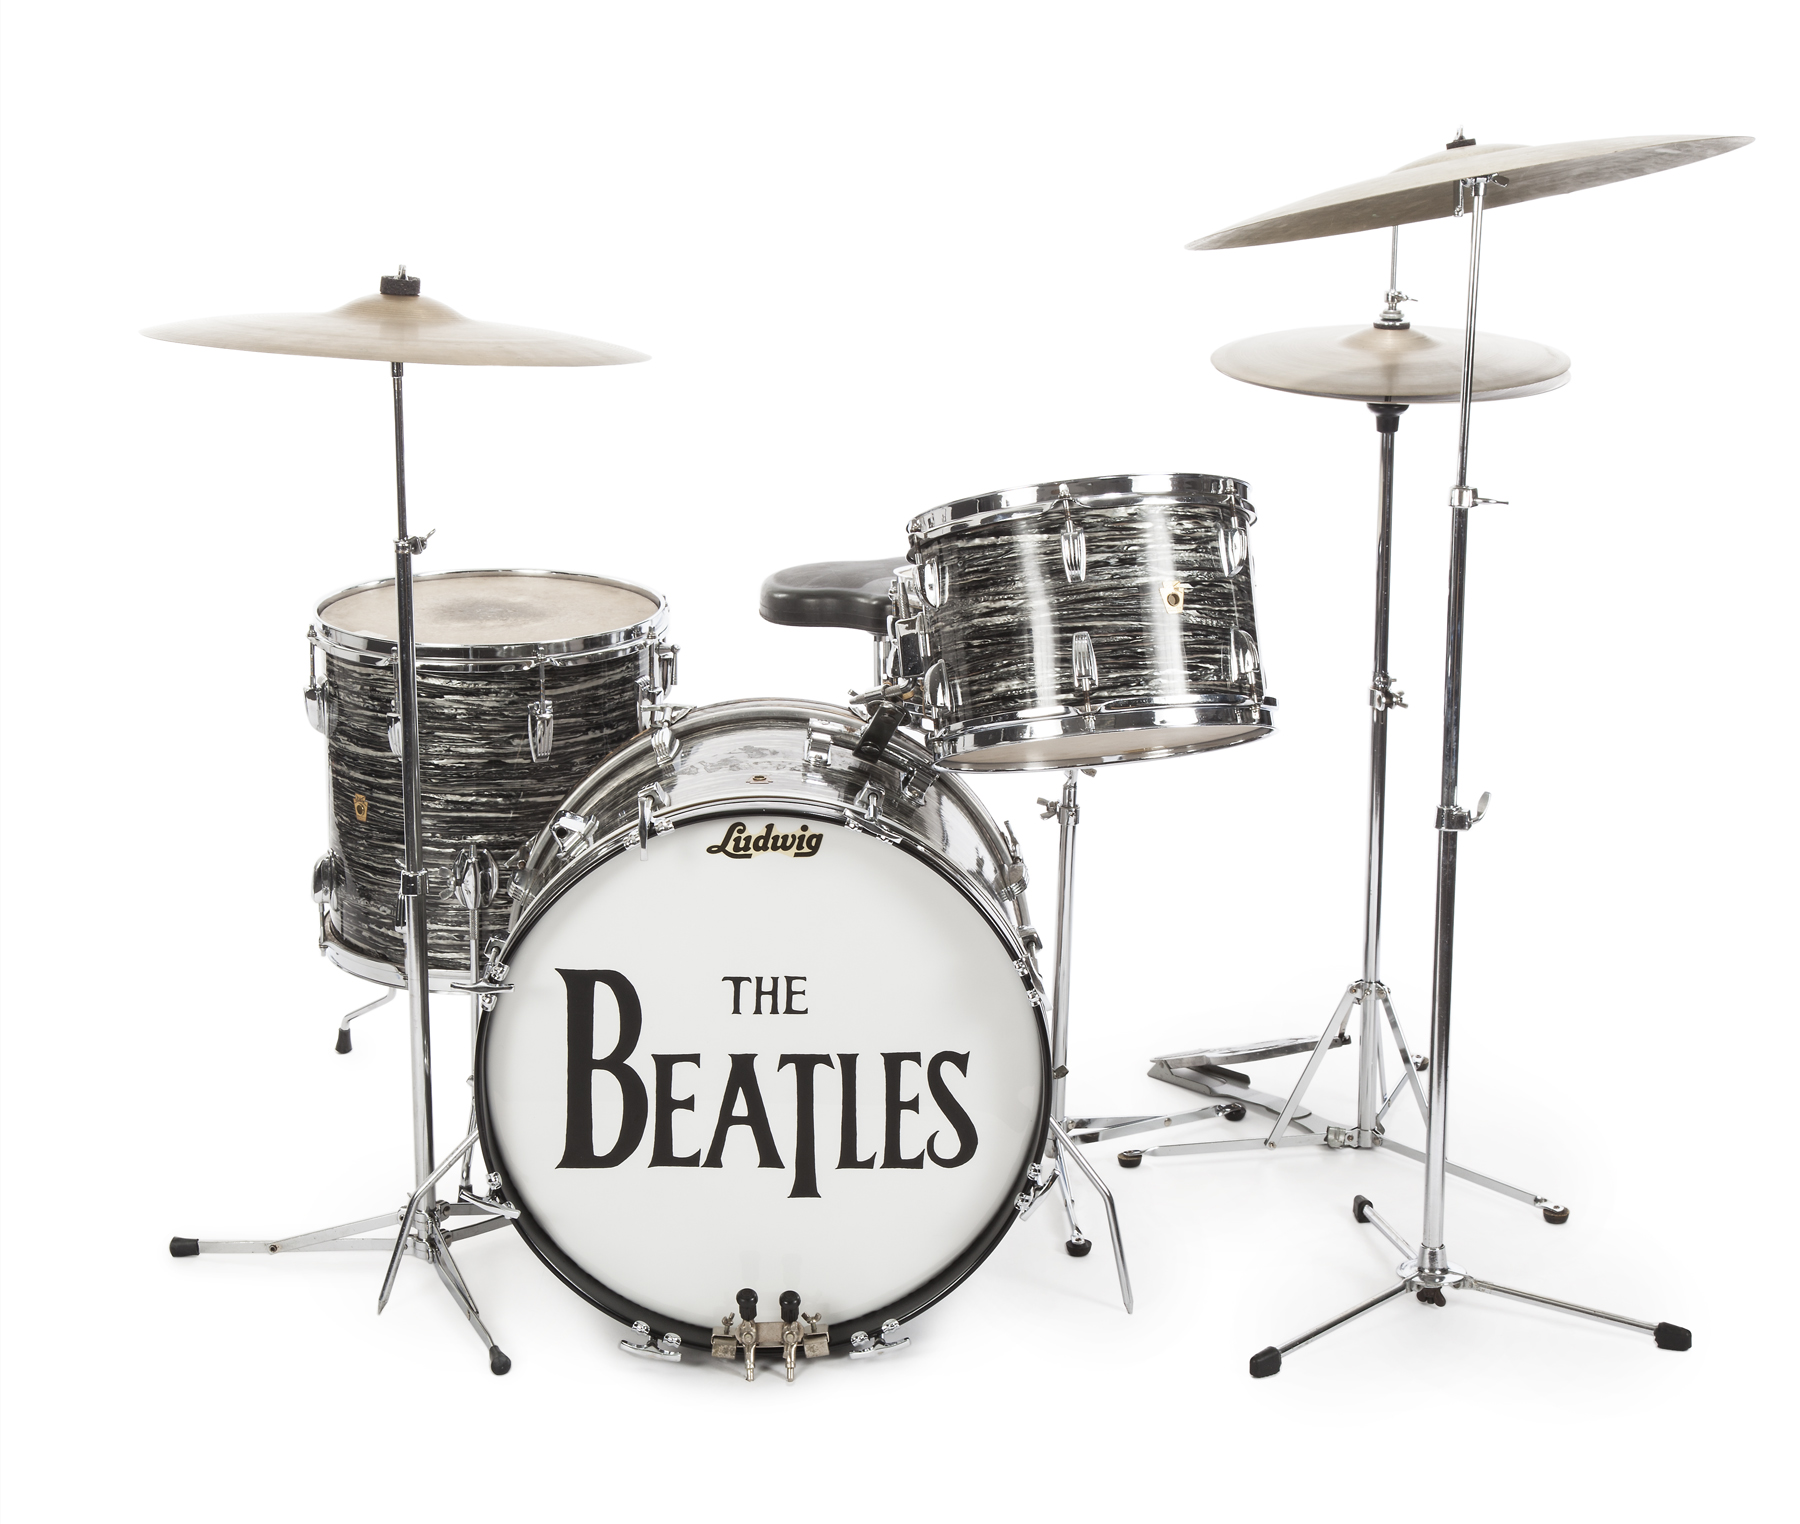 A Ludwig oyster black pearl three-piece drum kit that Ringo Starr played on stage and television, with the Beatles, in the early 1960s. It holds the world auction record for any drum kit.